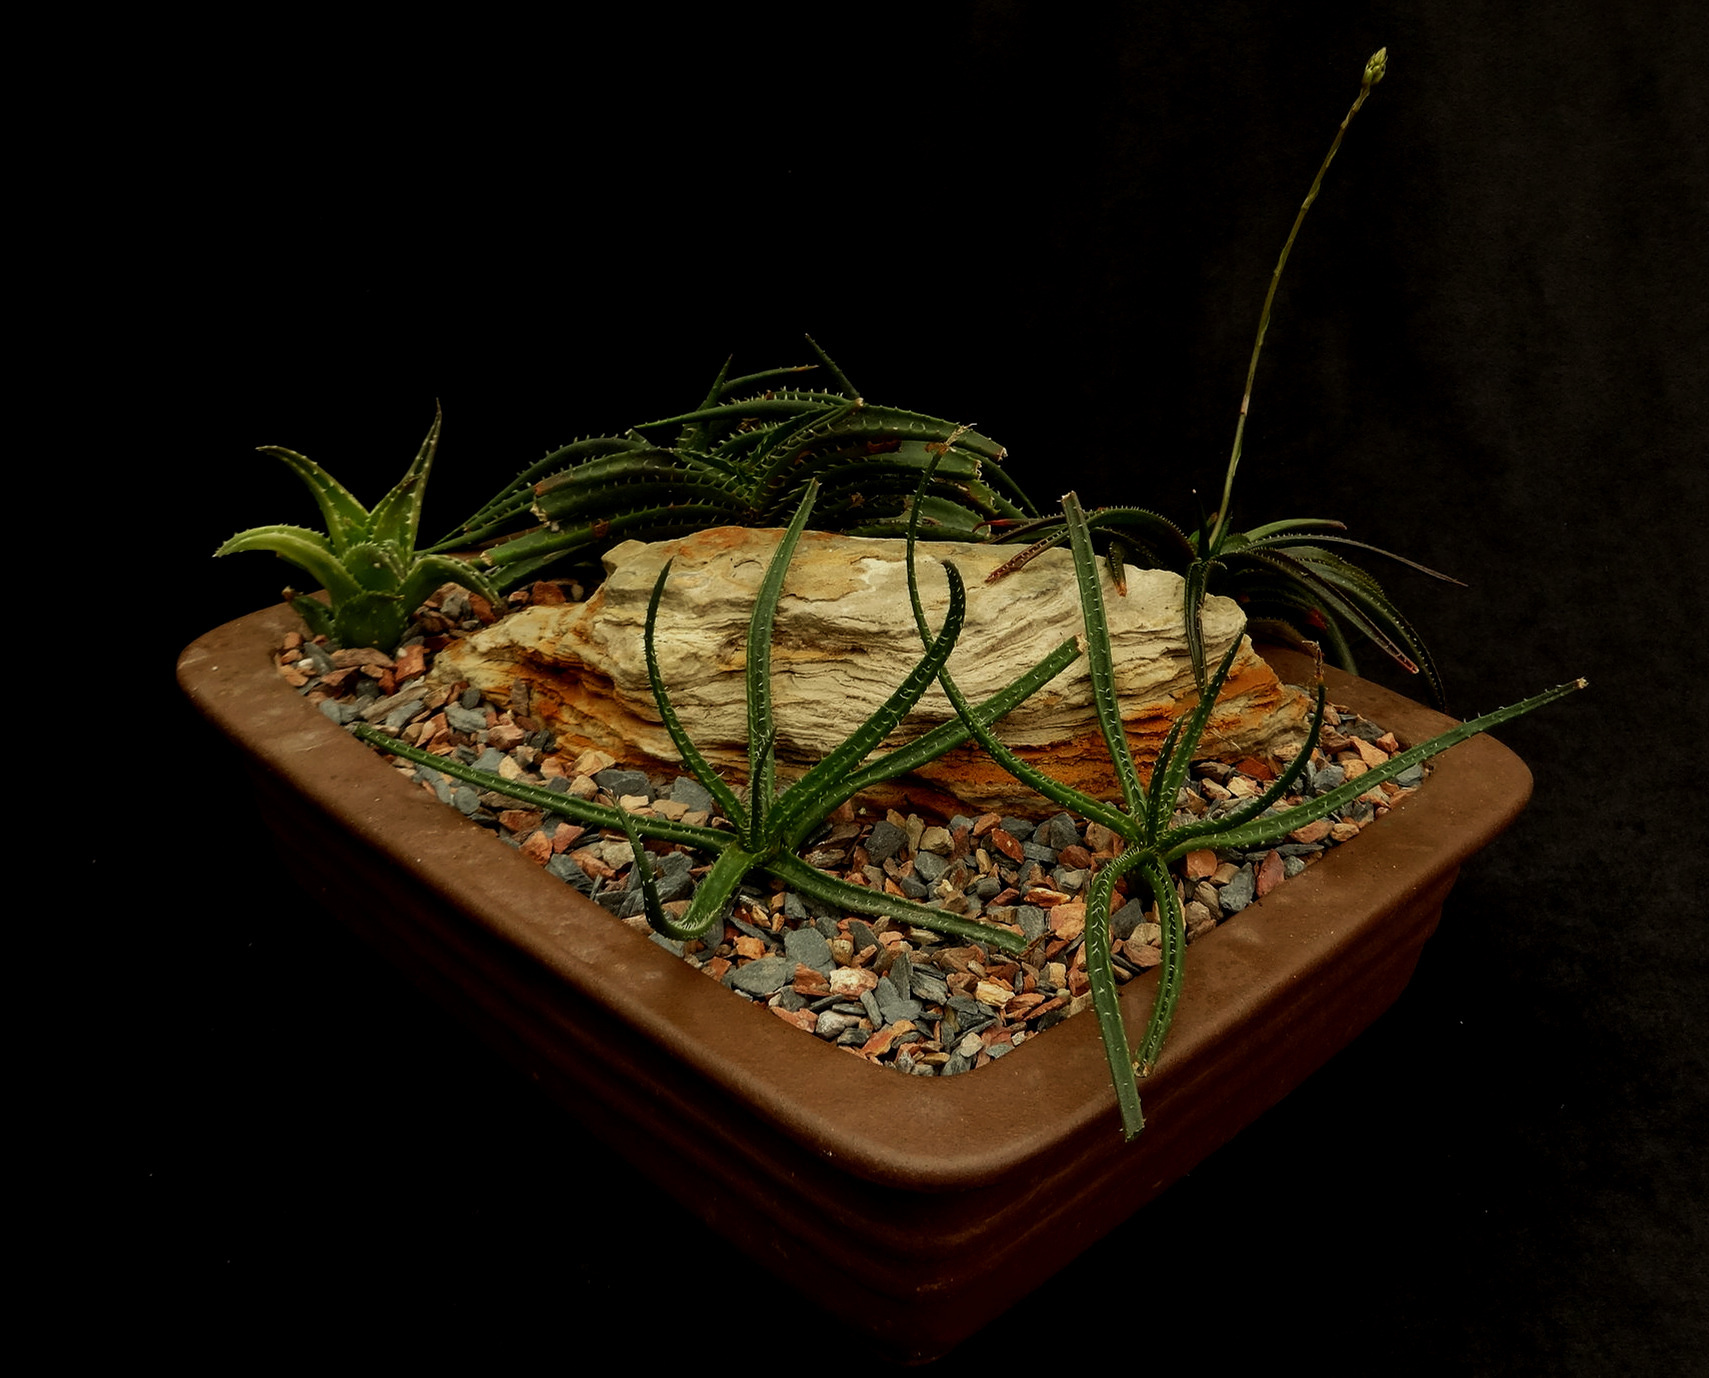 "A commercial quality unglazed Chinese ceramic bonsai tray repurposed to display a tabletop diorama of recently planted micro-miniature Malagasy aloes prepared as a gift for a friend. Clockwise from top center, a cluster of  Aloe calcairophylla ,  A. boiteaui , a pair of  A. droseroides  and  A. descoignsii . While three of these species are considered tricky in cultivation, this is otherwise a good example of ""copy+paste"" bonsai succulent presentation. Pot dimension 8"" x 6.5"" x 2.5""/20 cm x 16.5 cm x 6.5 cm. Author's collection."